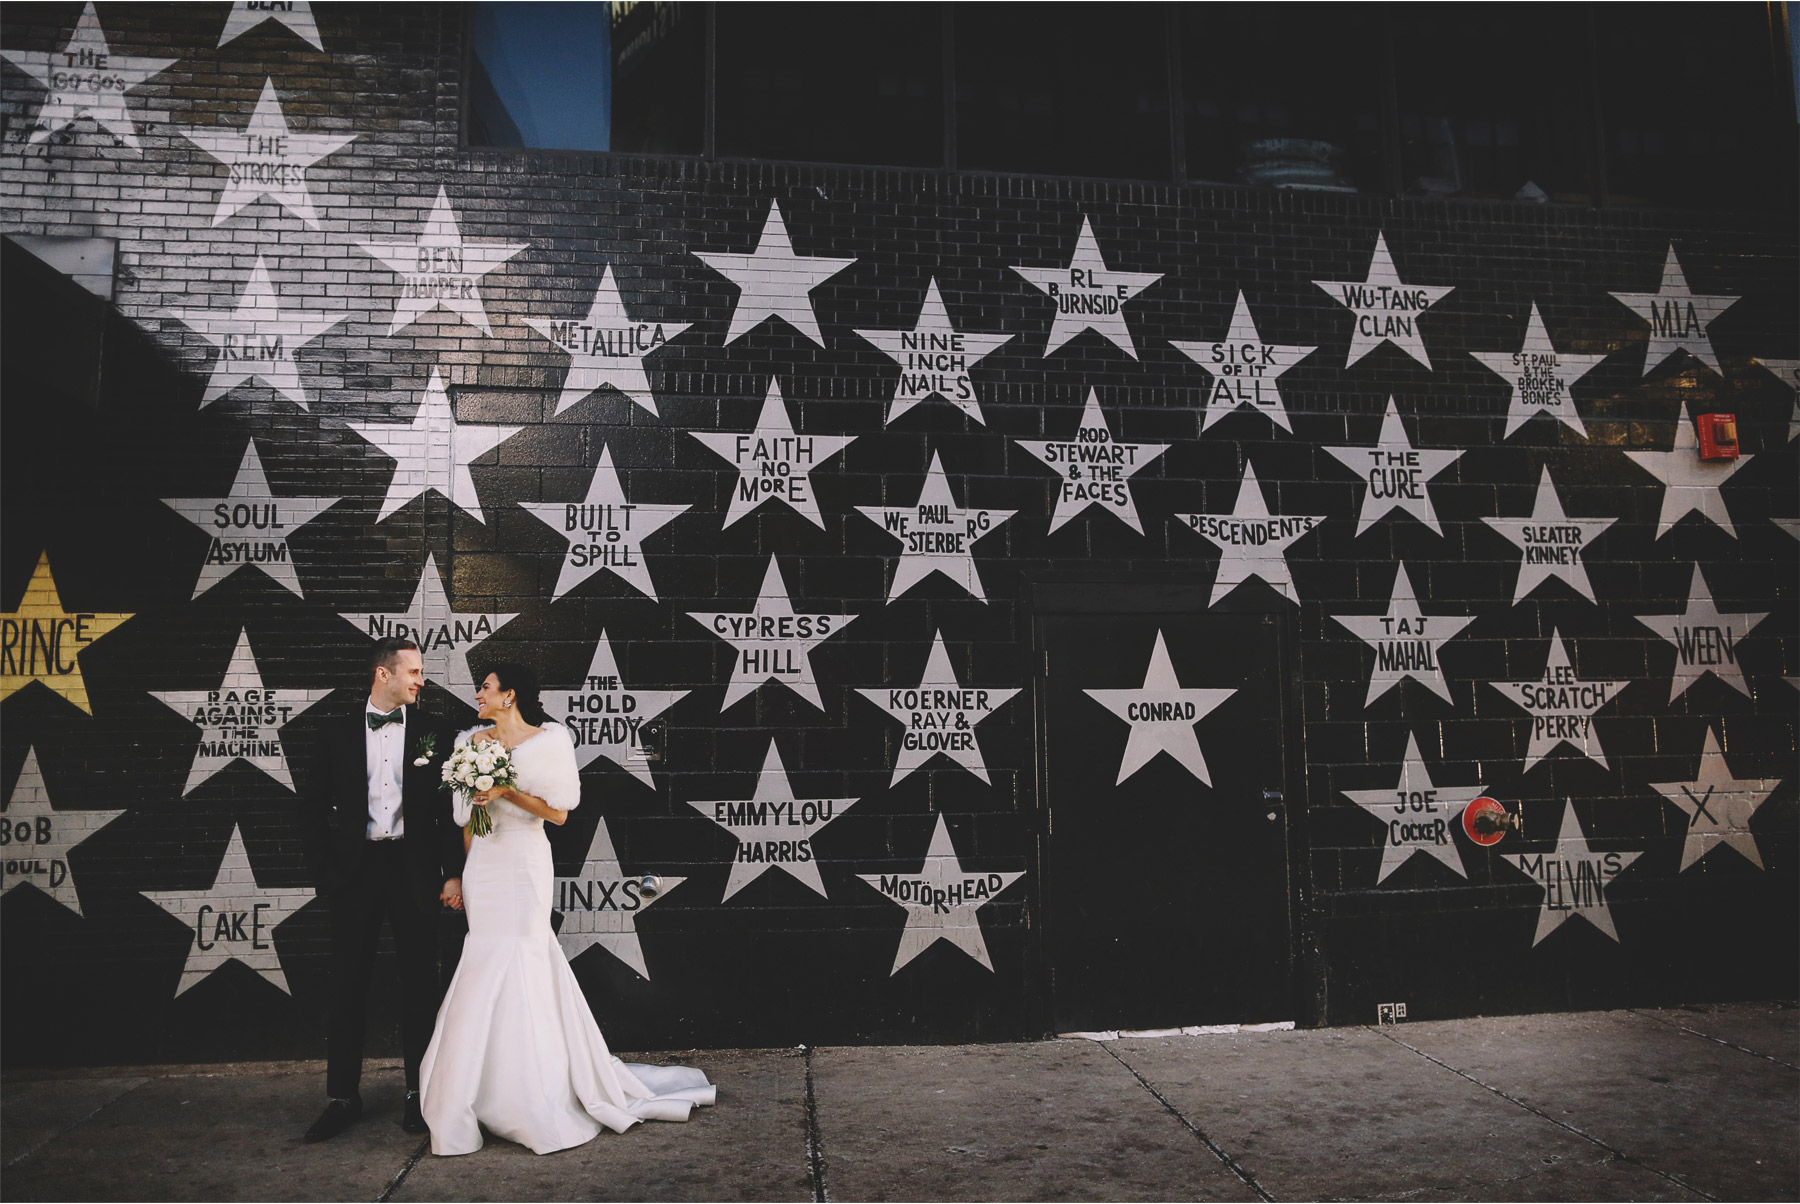 14-Minneapolis-Minnesota-Wedding-Photographer-Andrew-Vick-Photography-Winter-Bride-and-Groom-Downtown-First-Ave-Stars-Allison-and-Steve.jpg